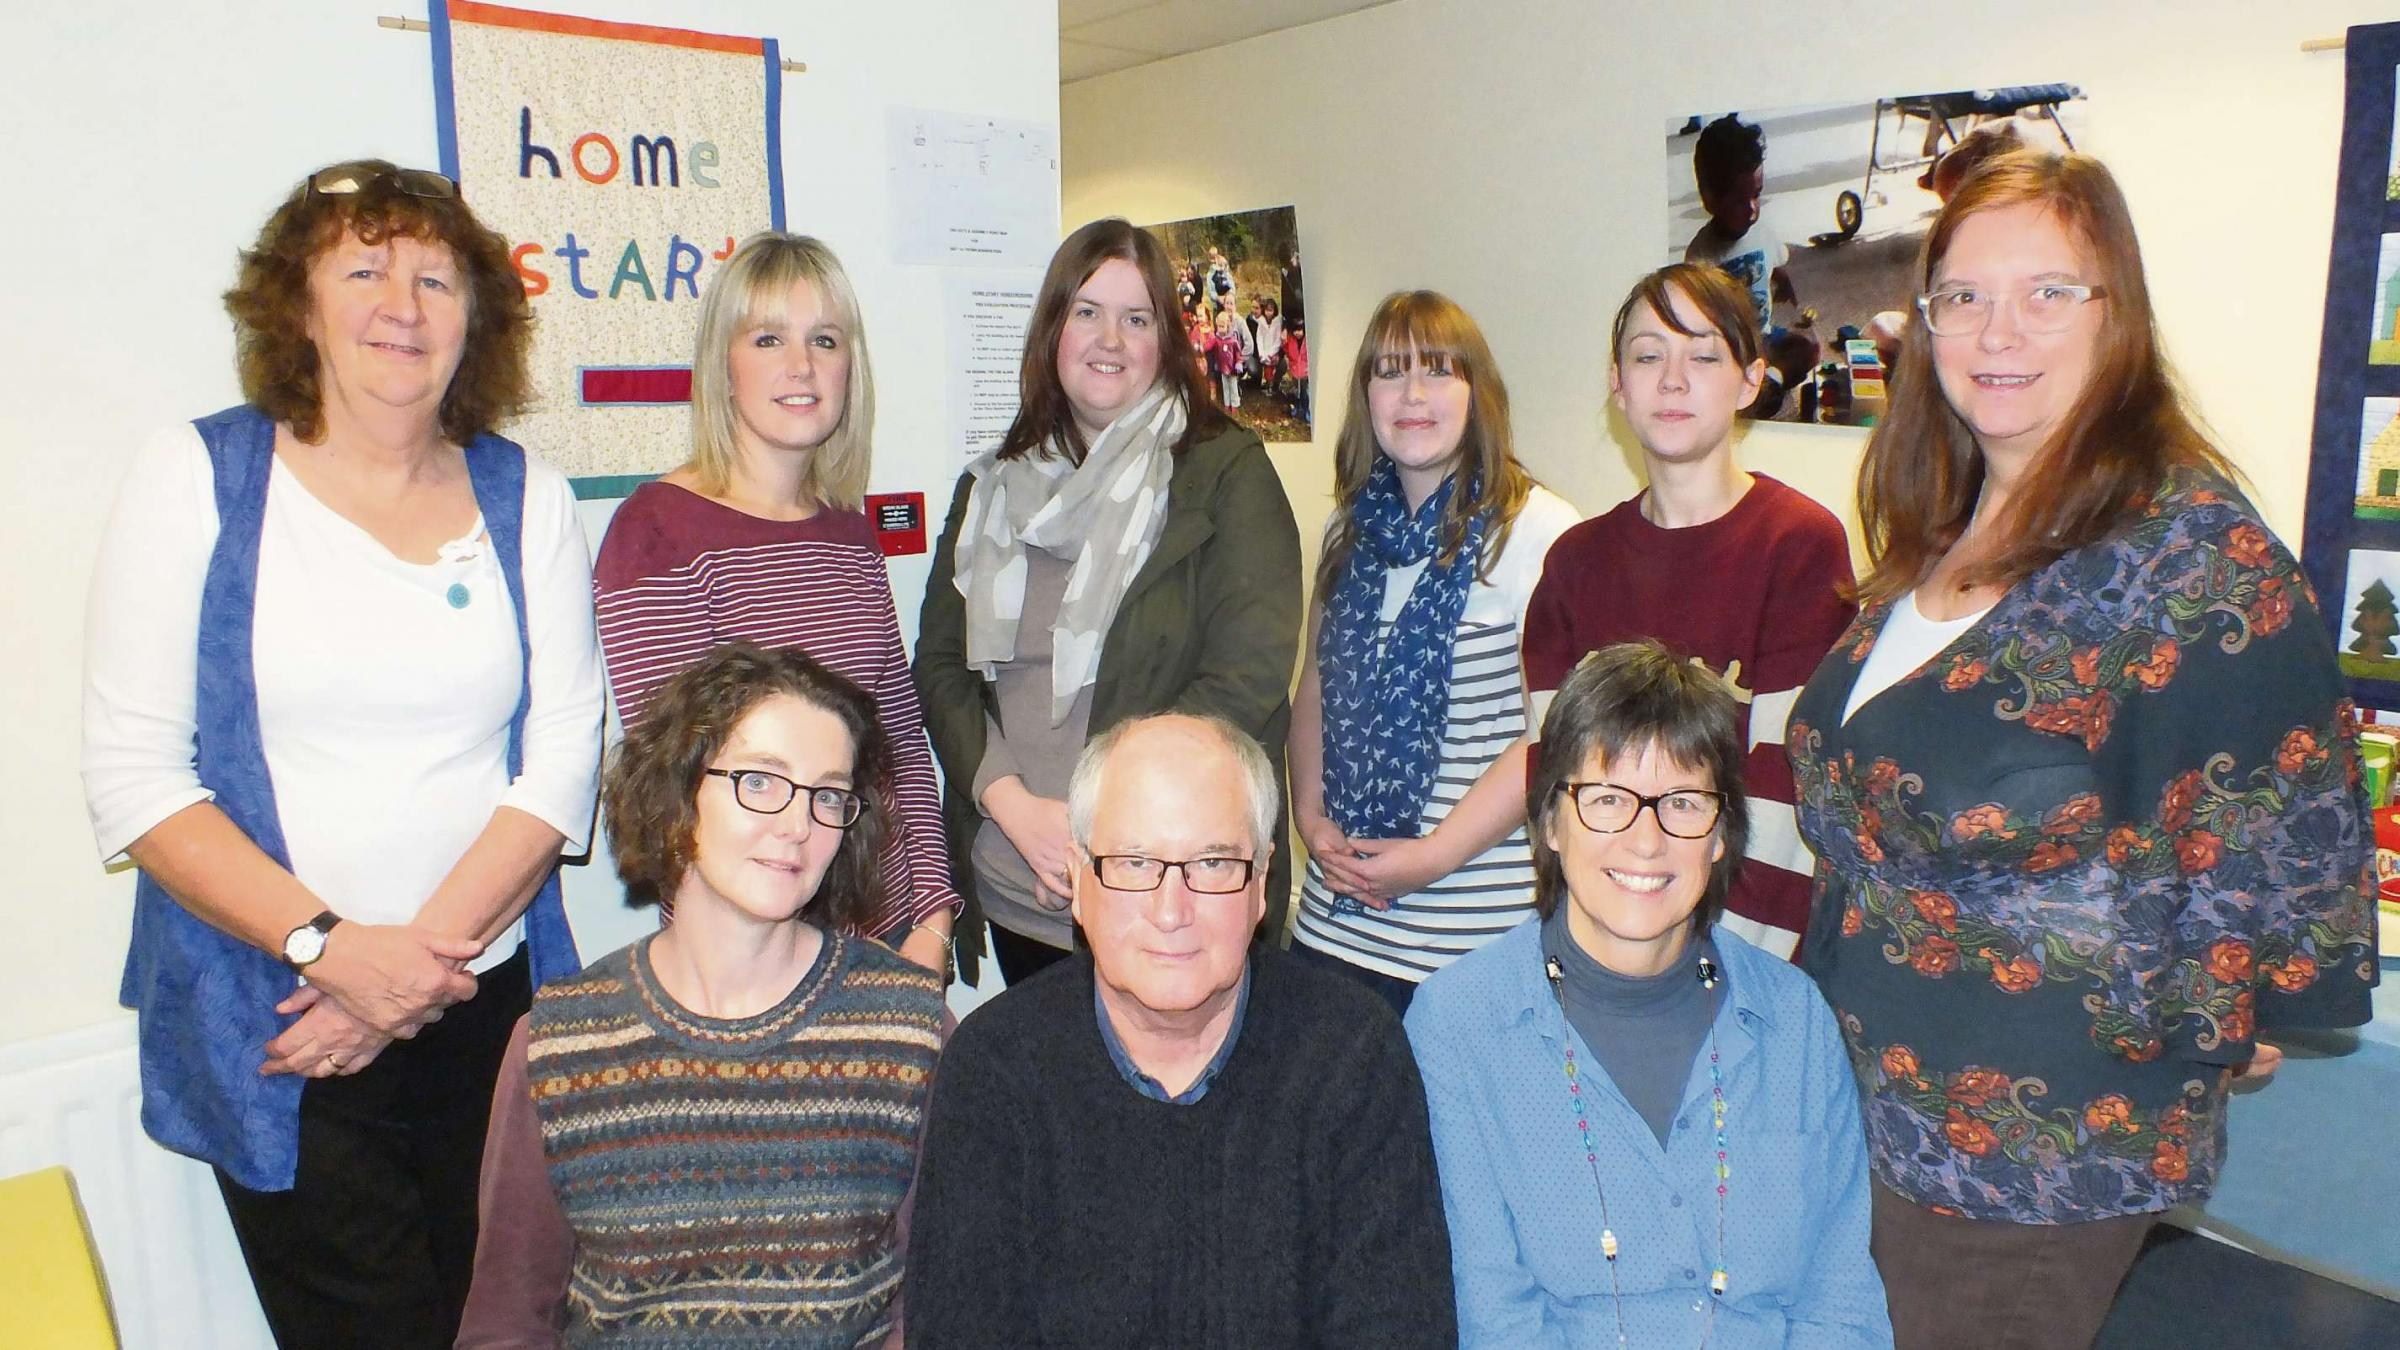 Back row, left to right: Home-Start organiser Barbara Stevens, Amy Britton, Beth Hanbury, Rachel Smith, Andrena Brown, Home-Start organiser Diane Gibson. Front row: Laura McCarthy, Peter Horne and Jan Doran.